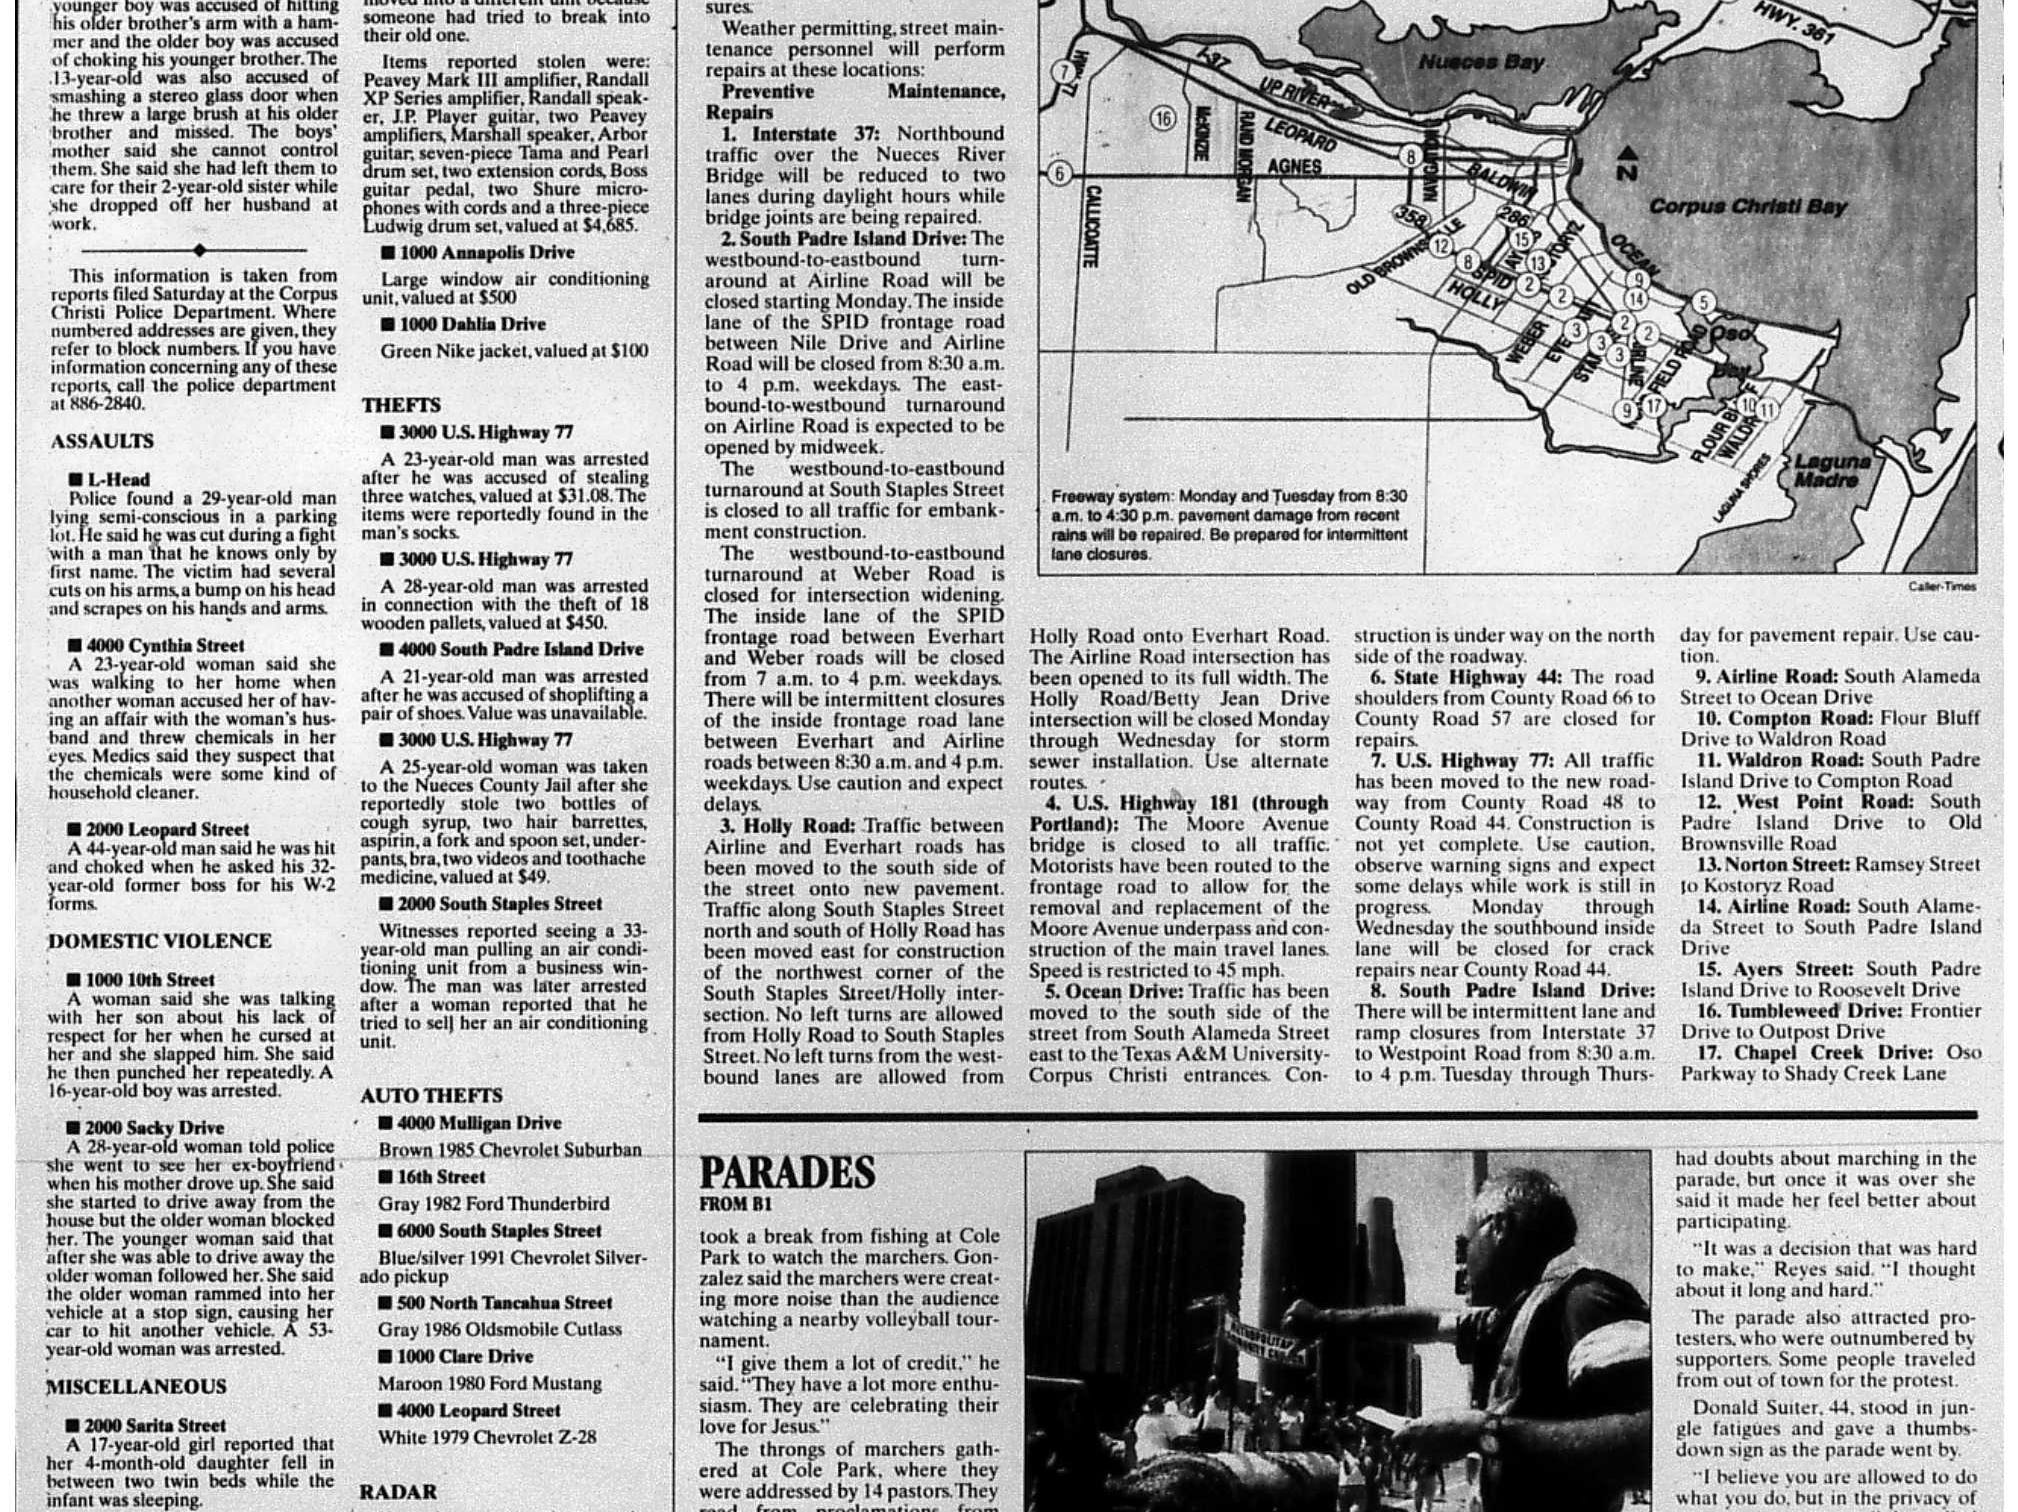 A page of the May 31, 1998 Caller-Times with a story about two parades being held on the same day. One was a gay pride parade and another was a Jesus parade. (2 of 2)